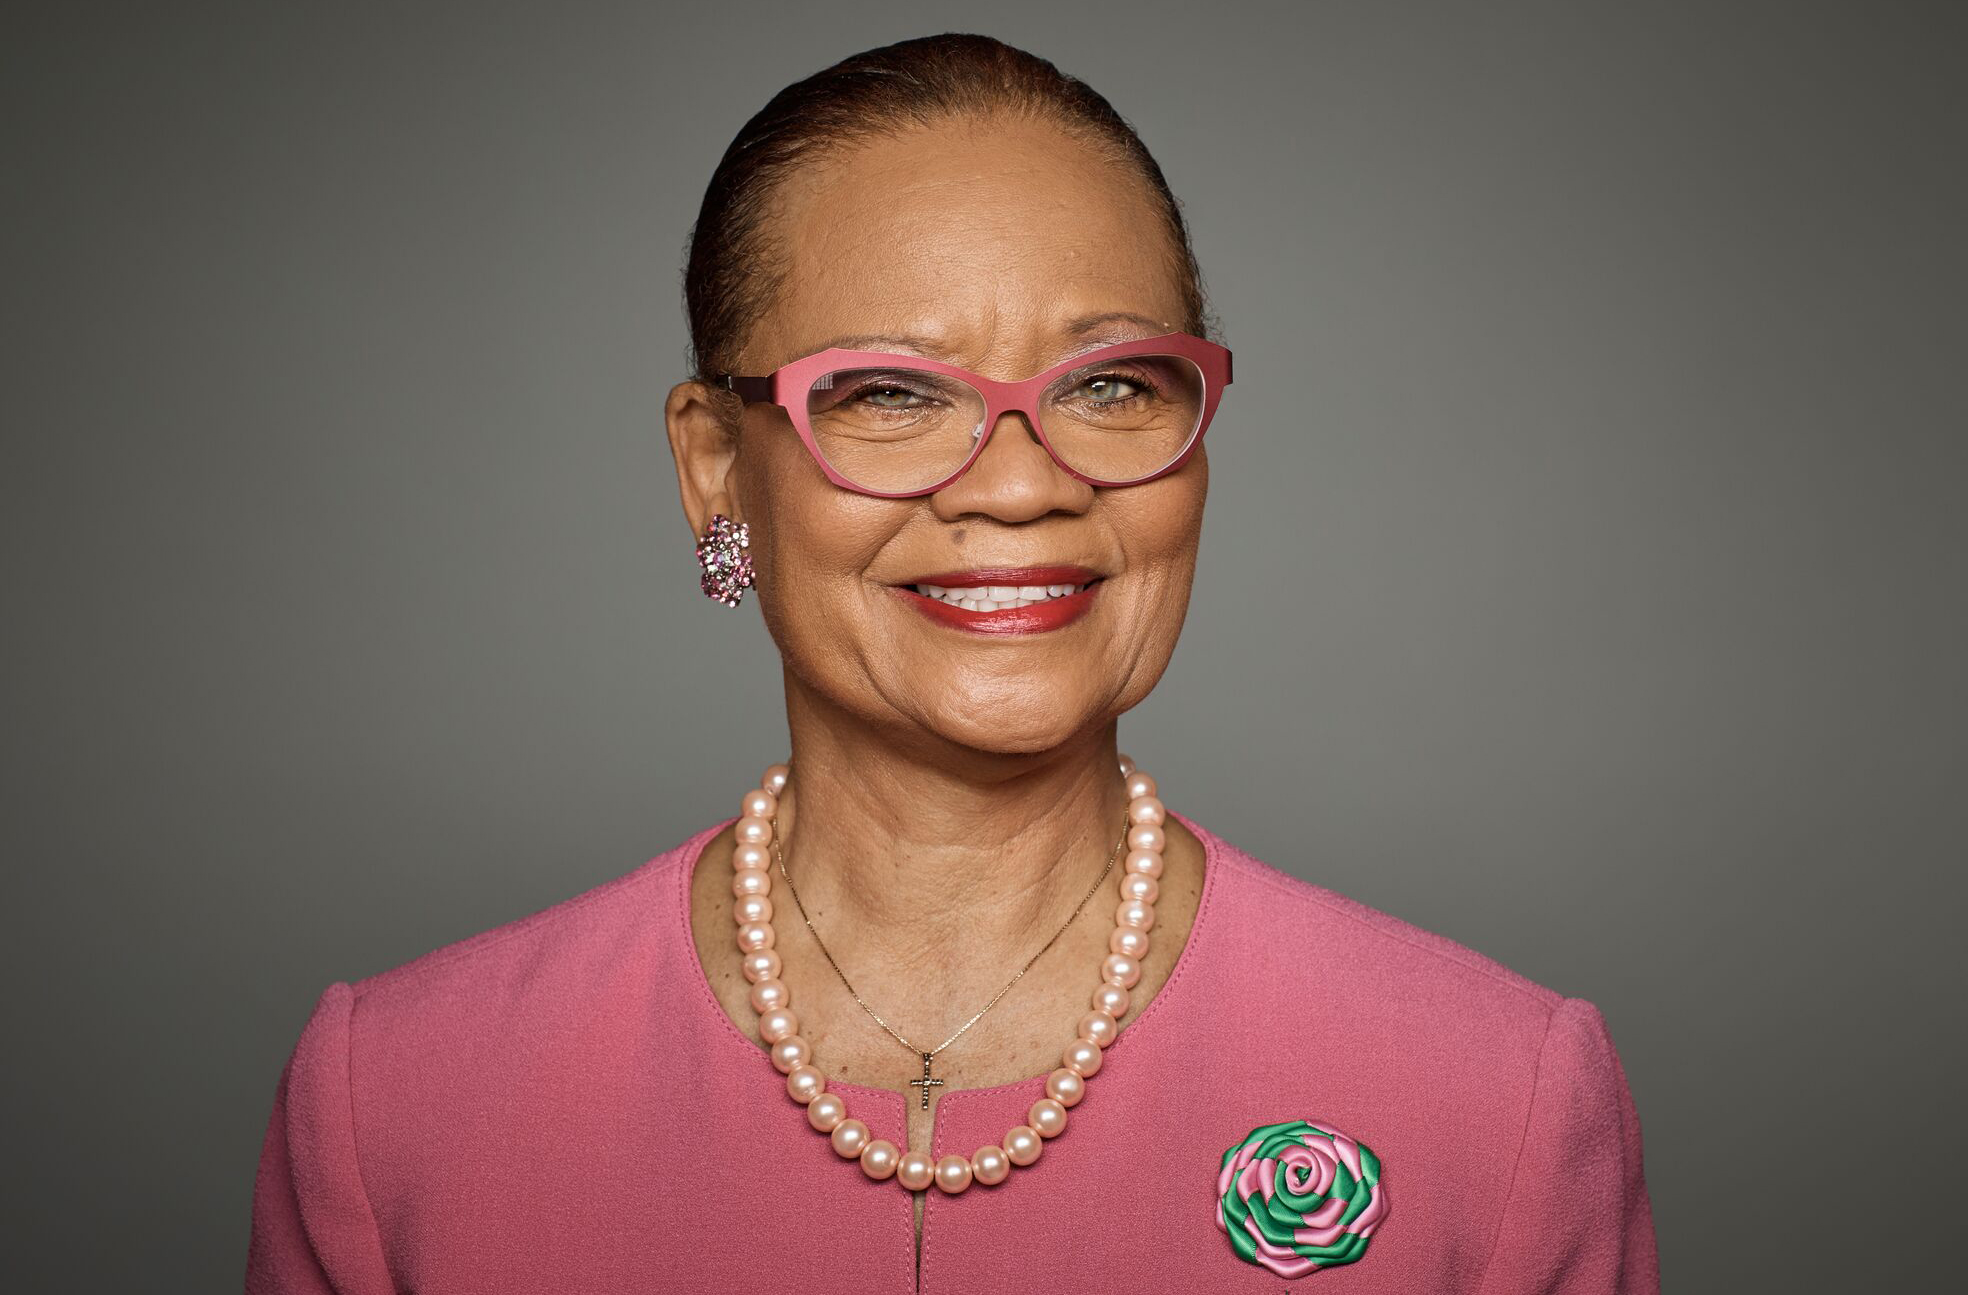 Headshot of Lorina Marshall-Blake wearing pink glasses, a pink jacket, and pearls